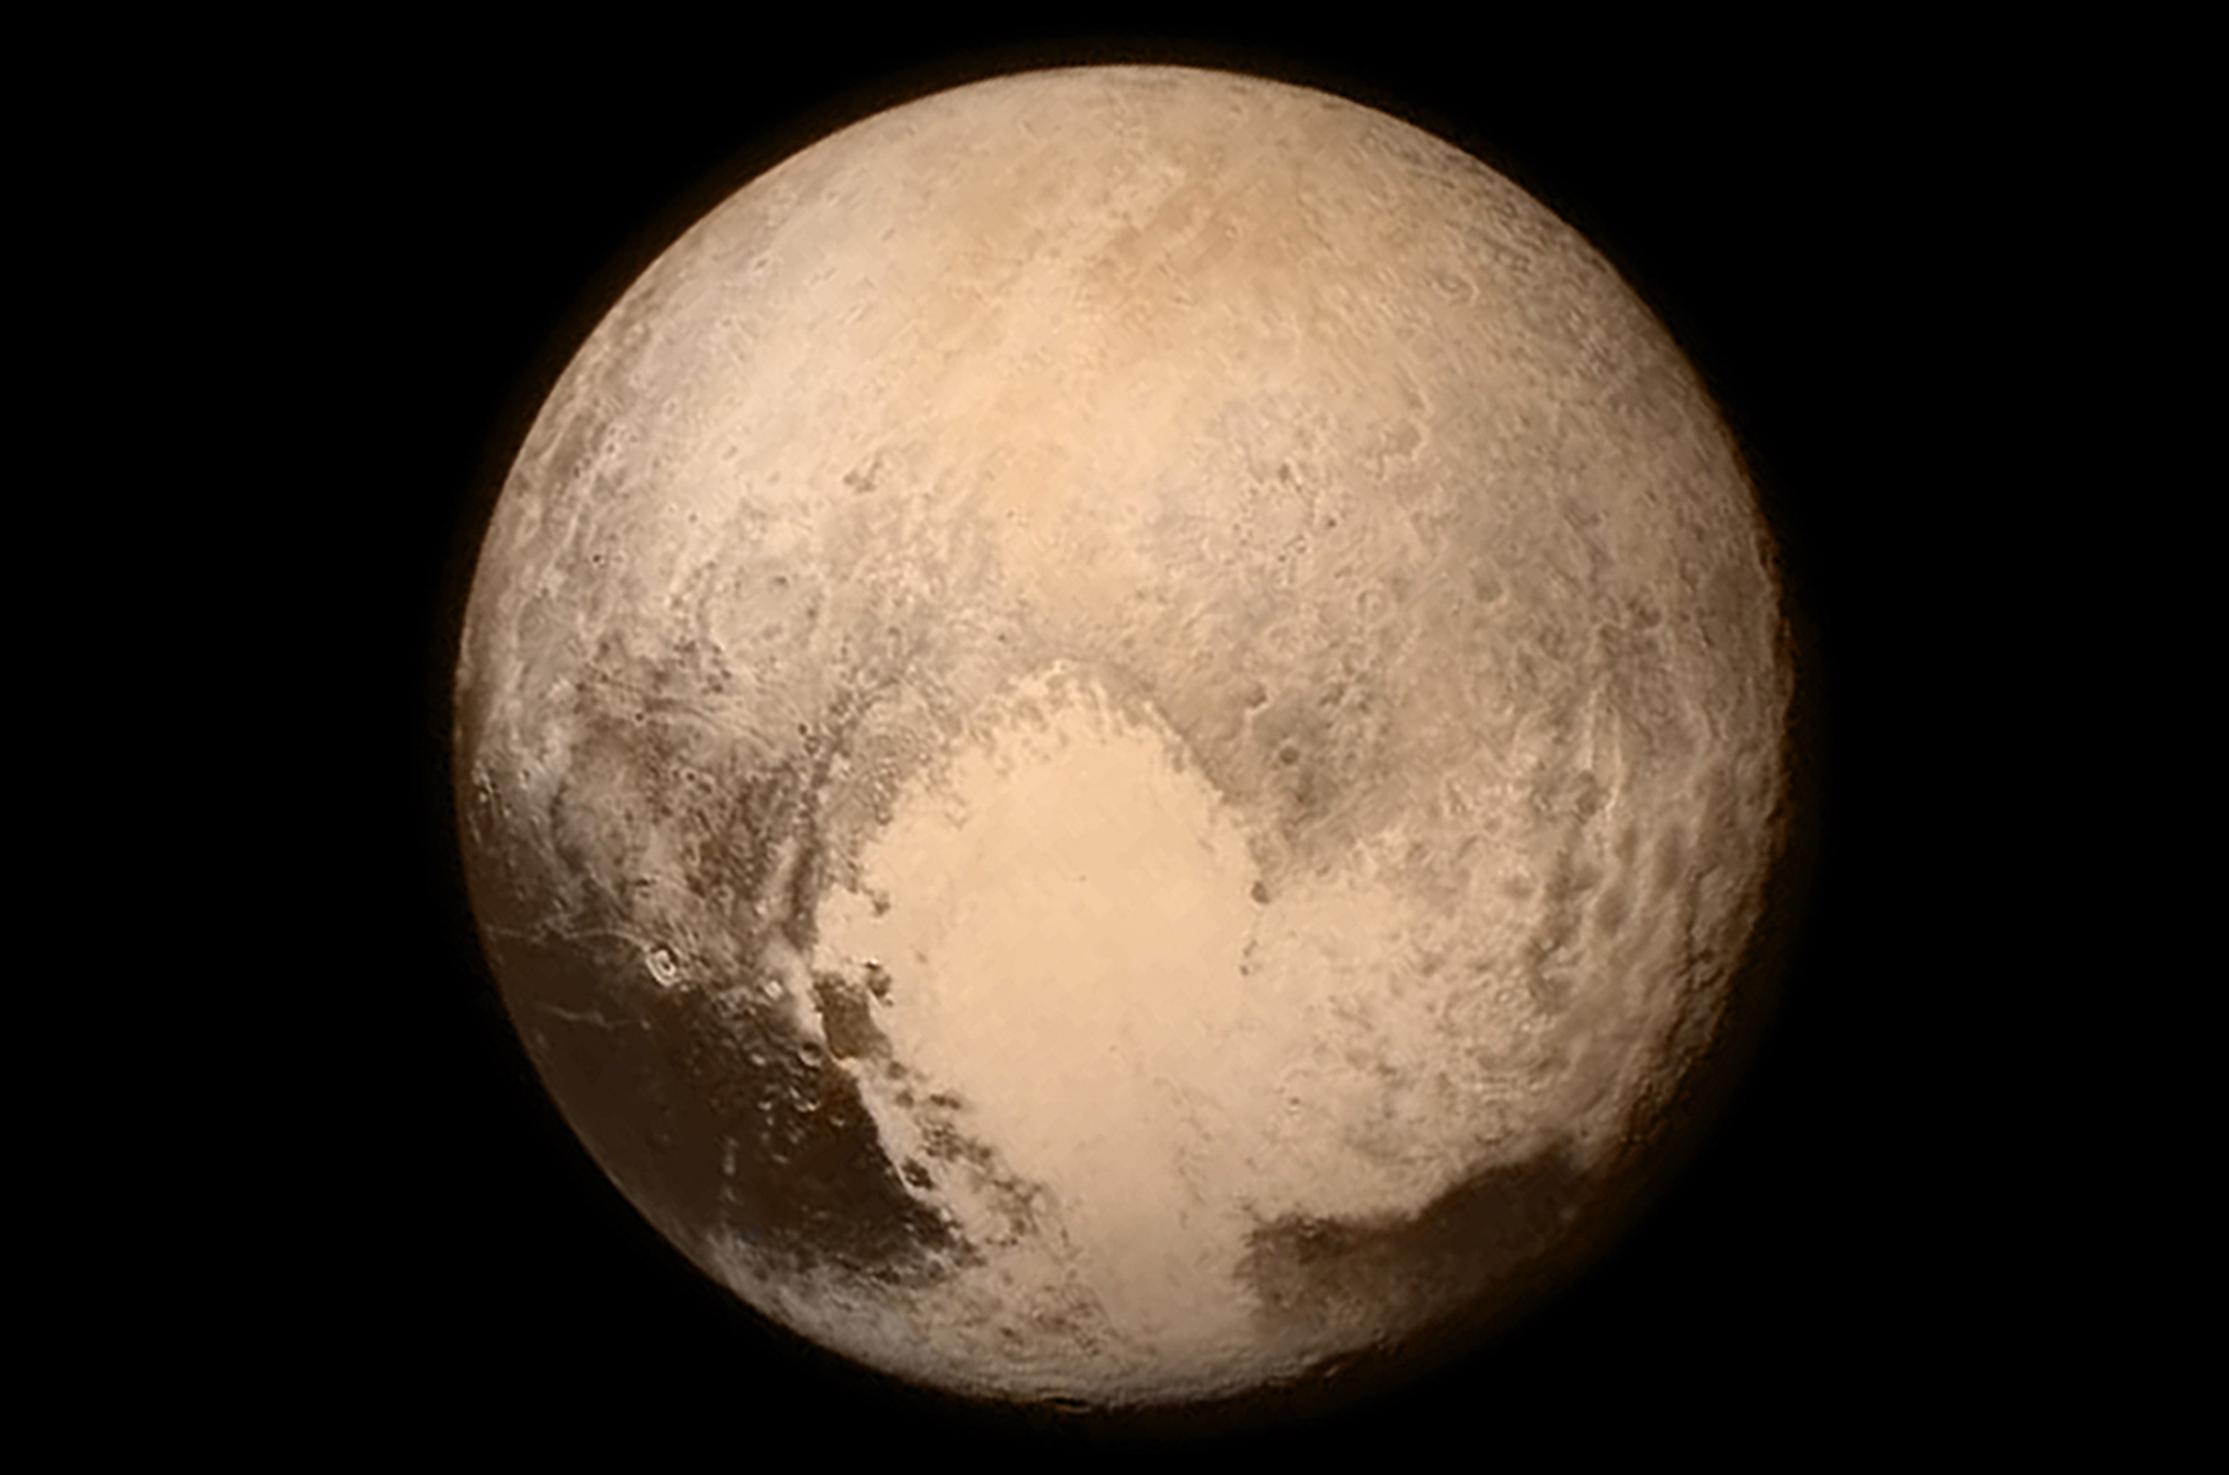 Pluto pictures: Nasa reveals first high-resolution images of surface